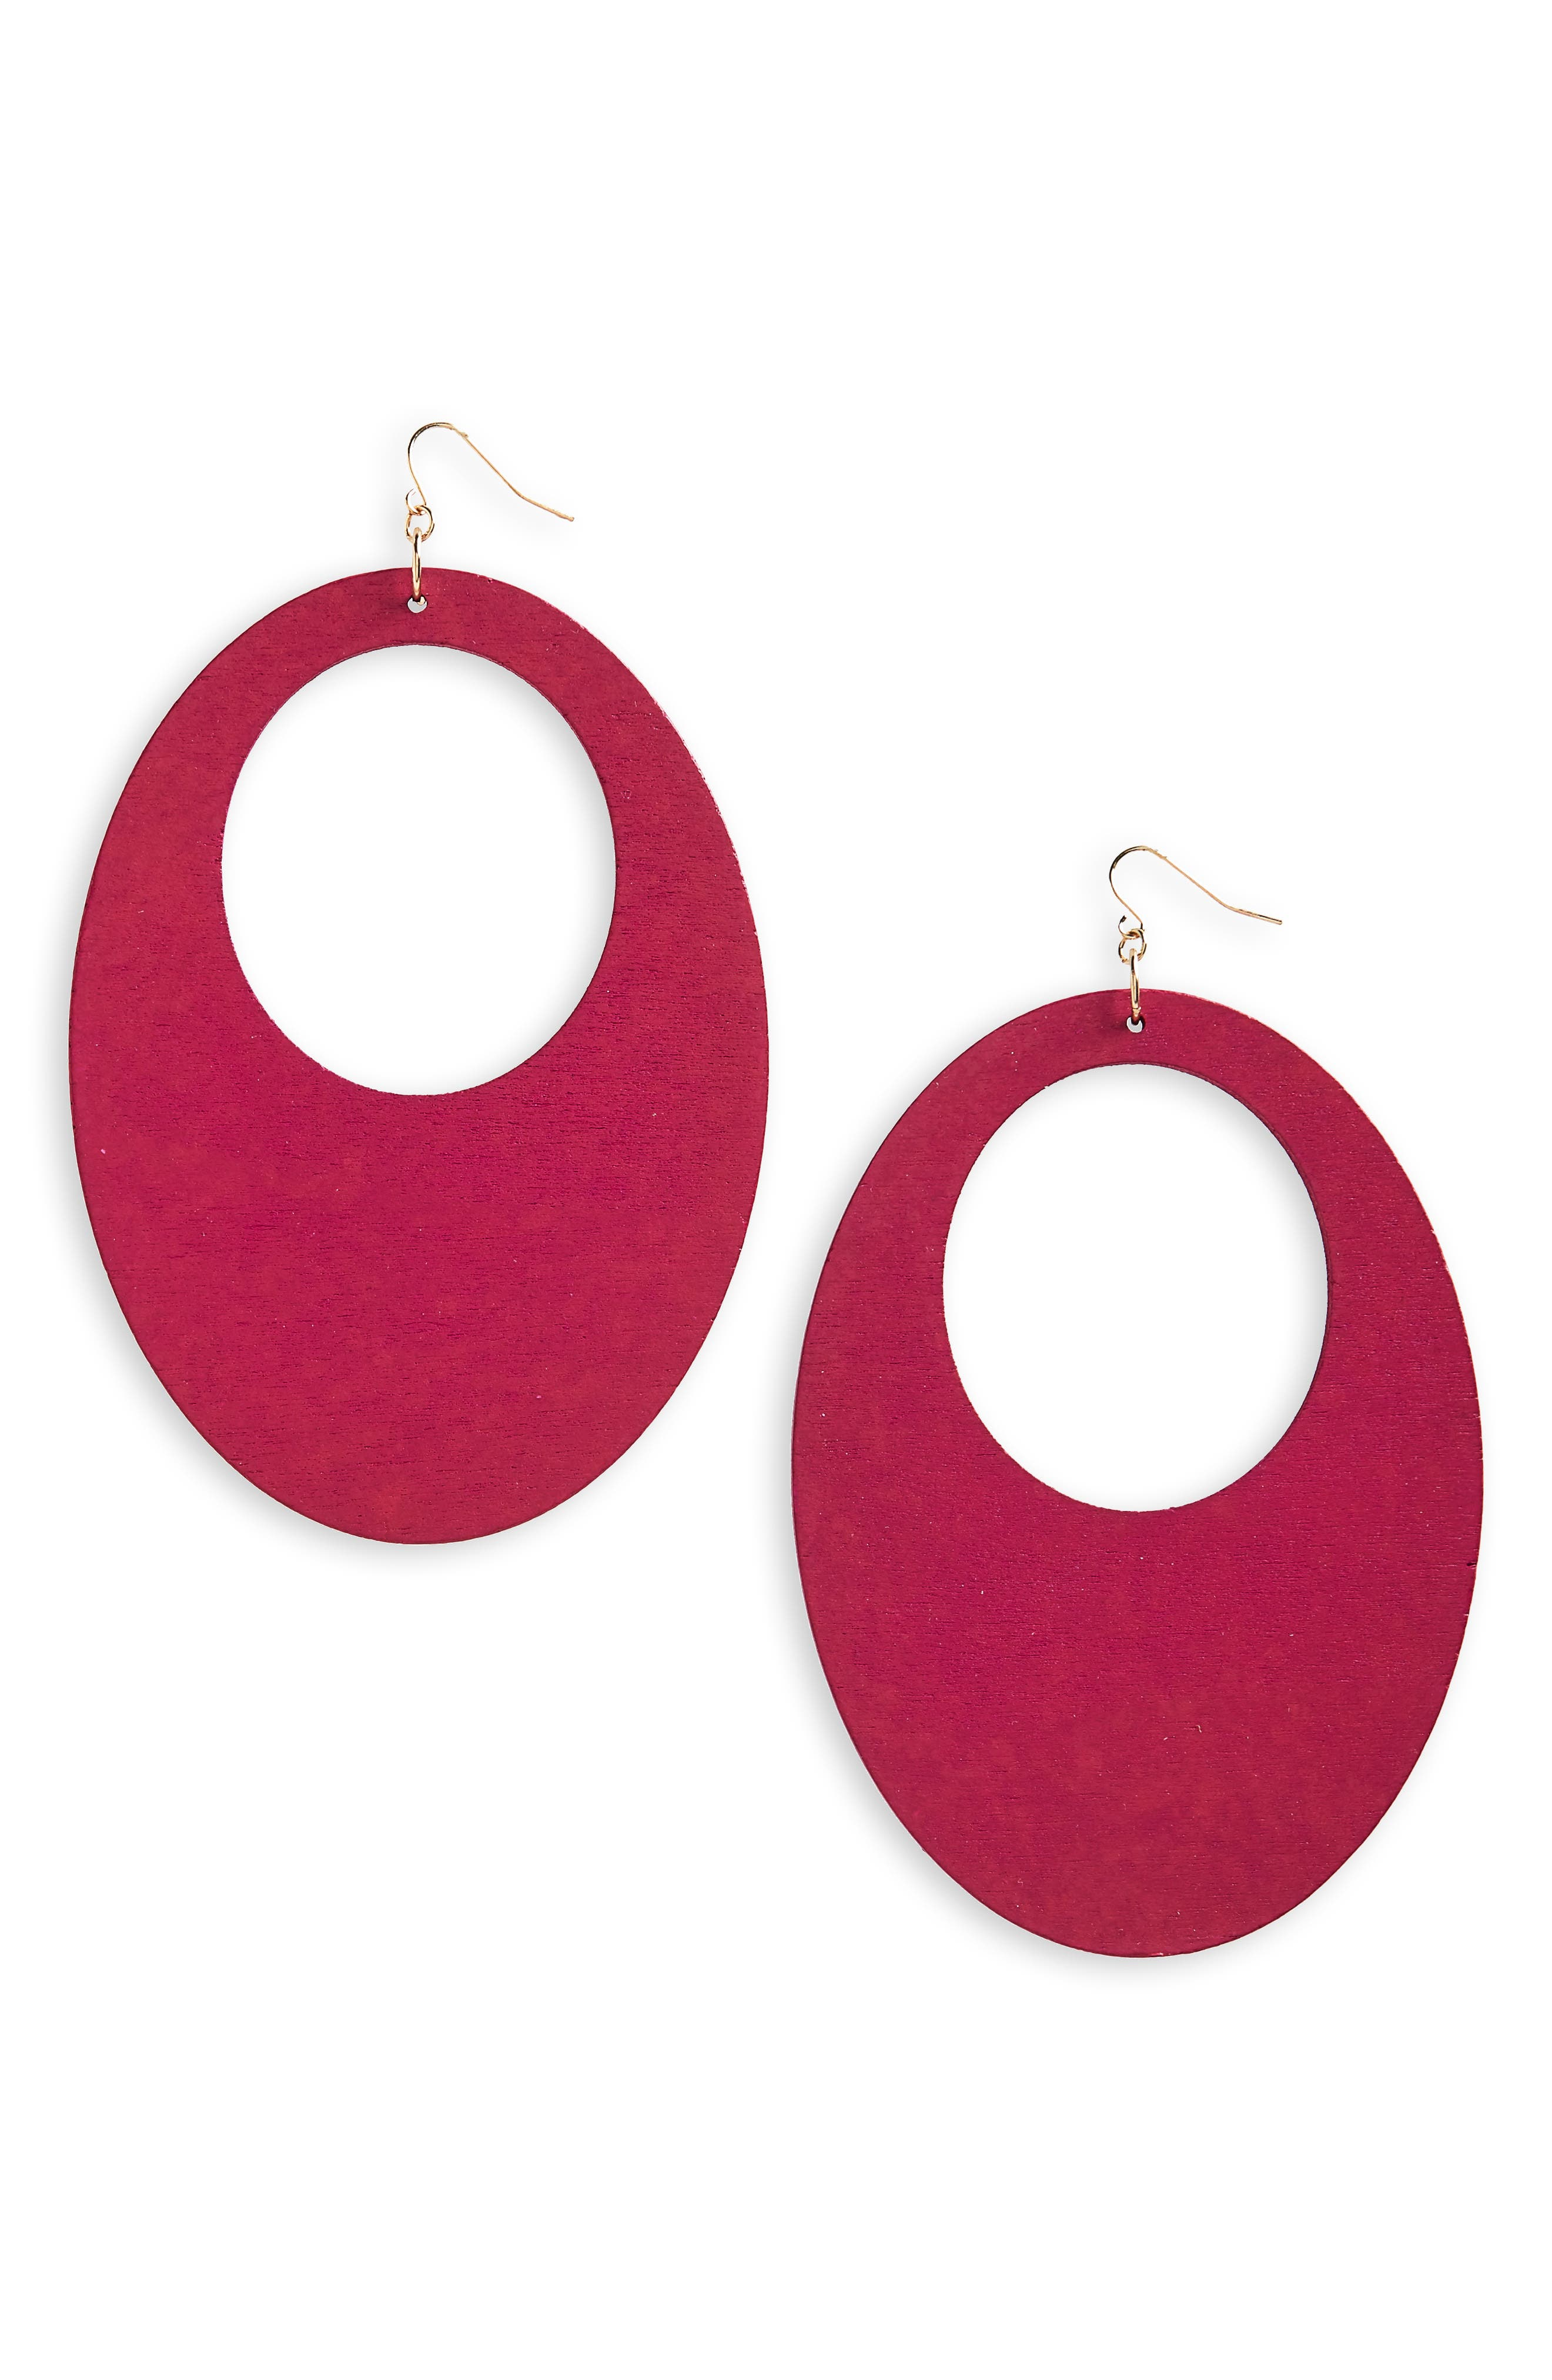 Couture Wood Earrings,                             Main thumbnail 1, color,                             Hot Pink